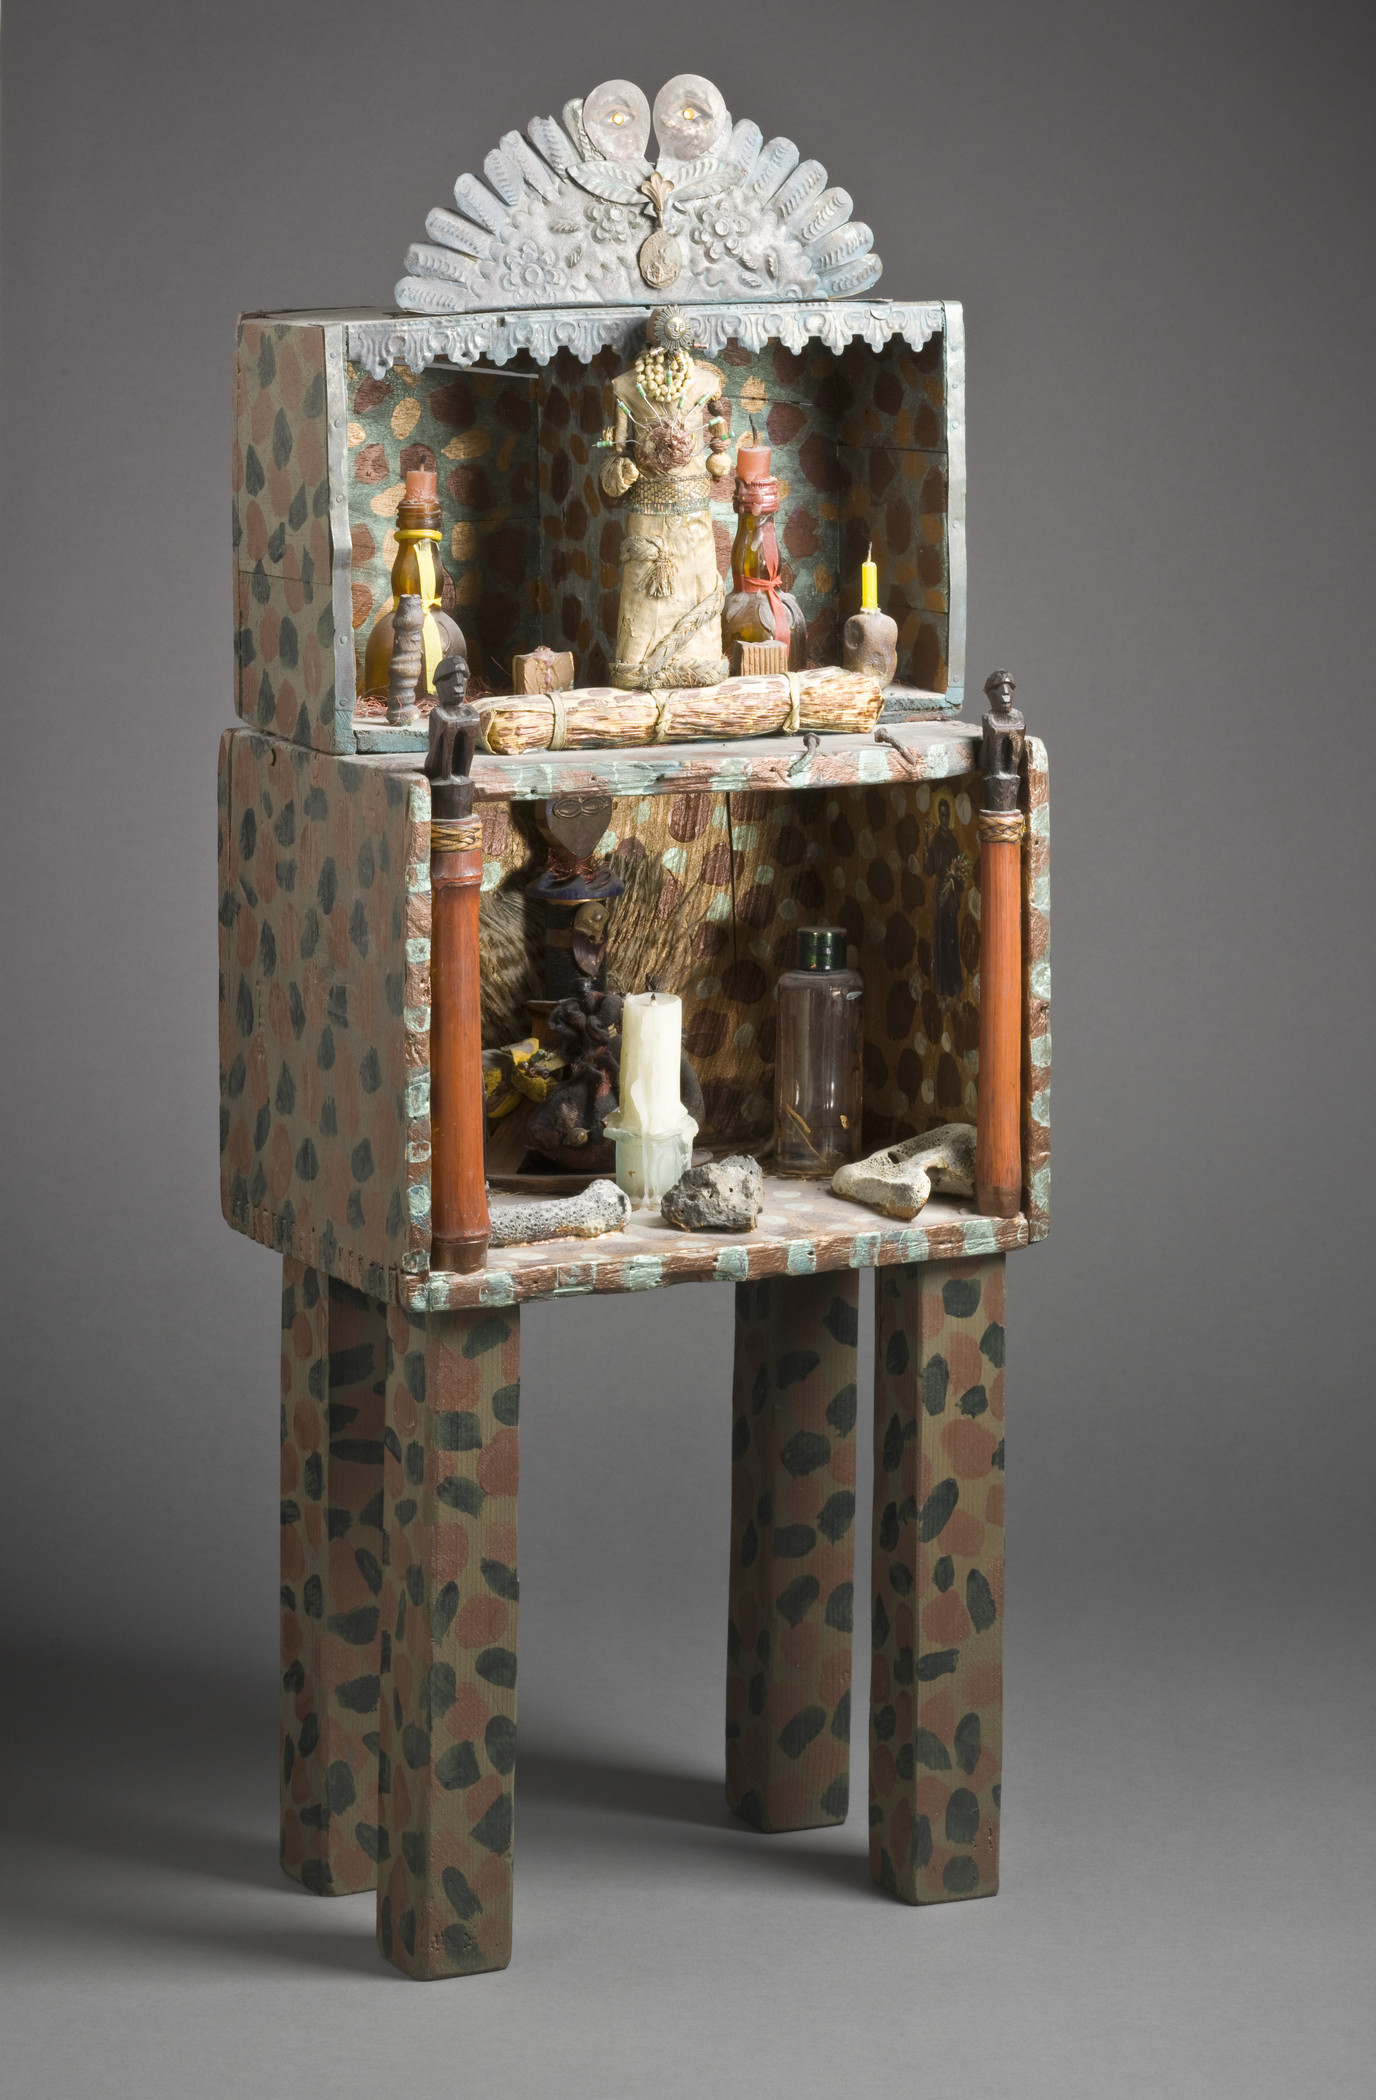 Betye Saar, Gris Gris Guardian, 1990–93, Los Angeles County Museum of Art, purchased with funds provided by the Richard Florsheim Art Fund and the Modern and Contemporary Art Council, © Betye Saar, photo © Museum Associates/LACMA